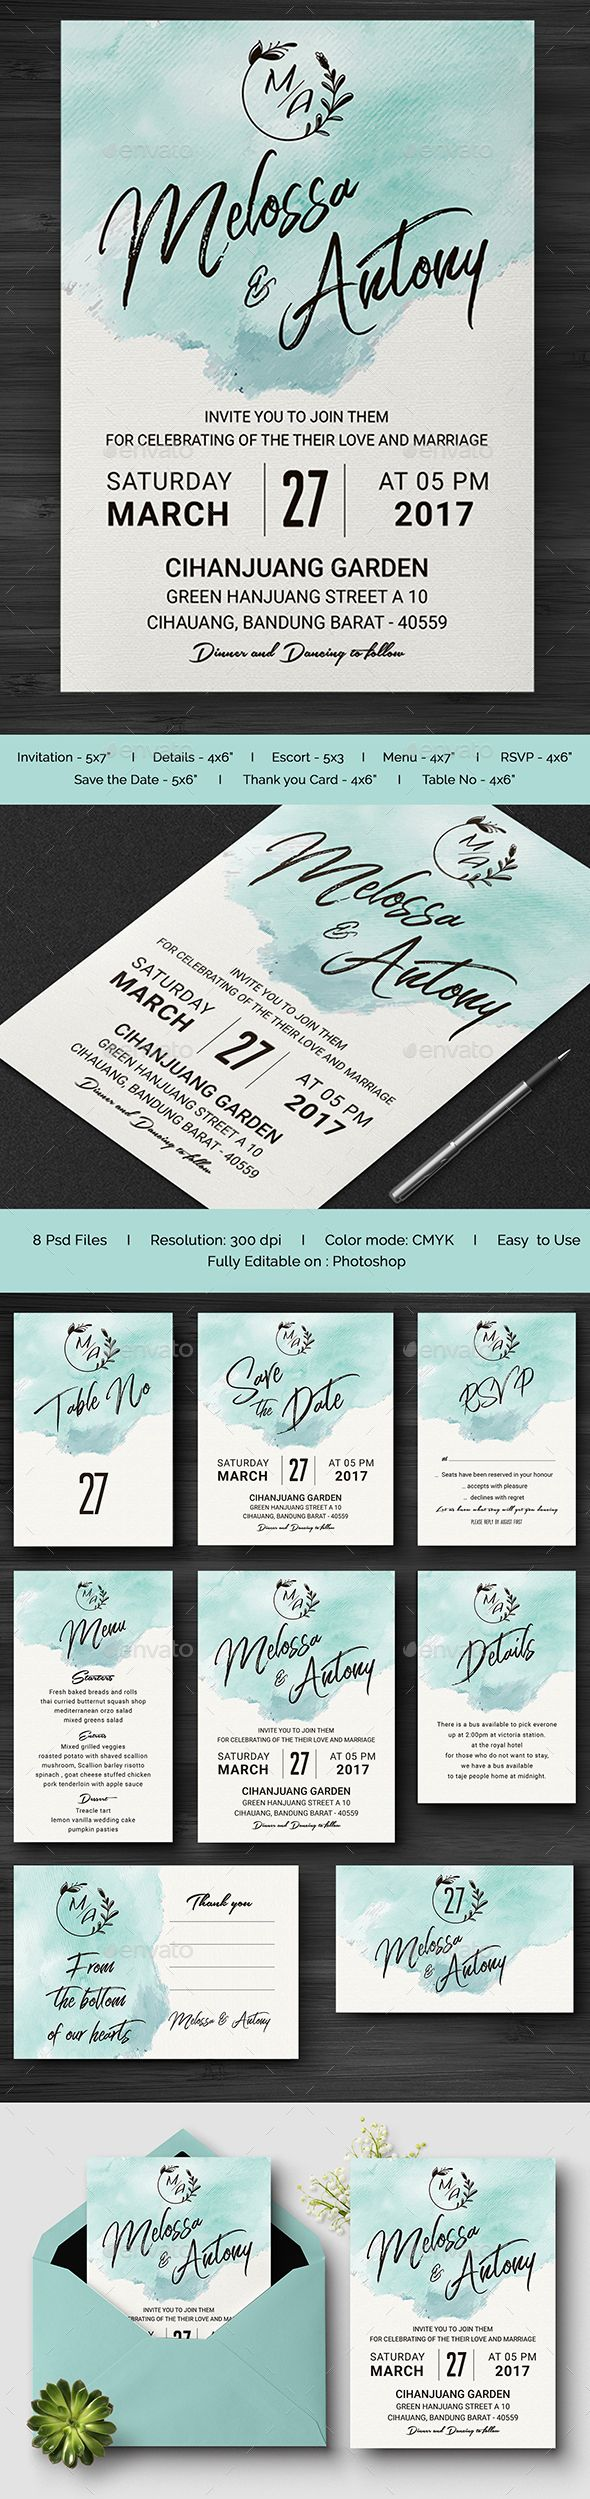 free wedding invitation psd%0A Best     Wedding invitation templates ideas on Pinterest   Diy wedding  stationery  Wedding invitation wording templates and Wedding invitation  wording